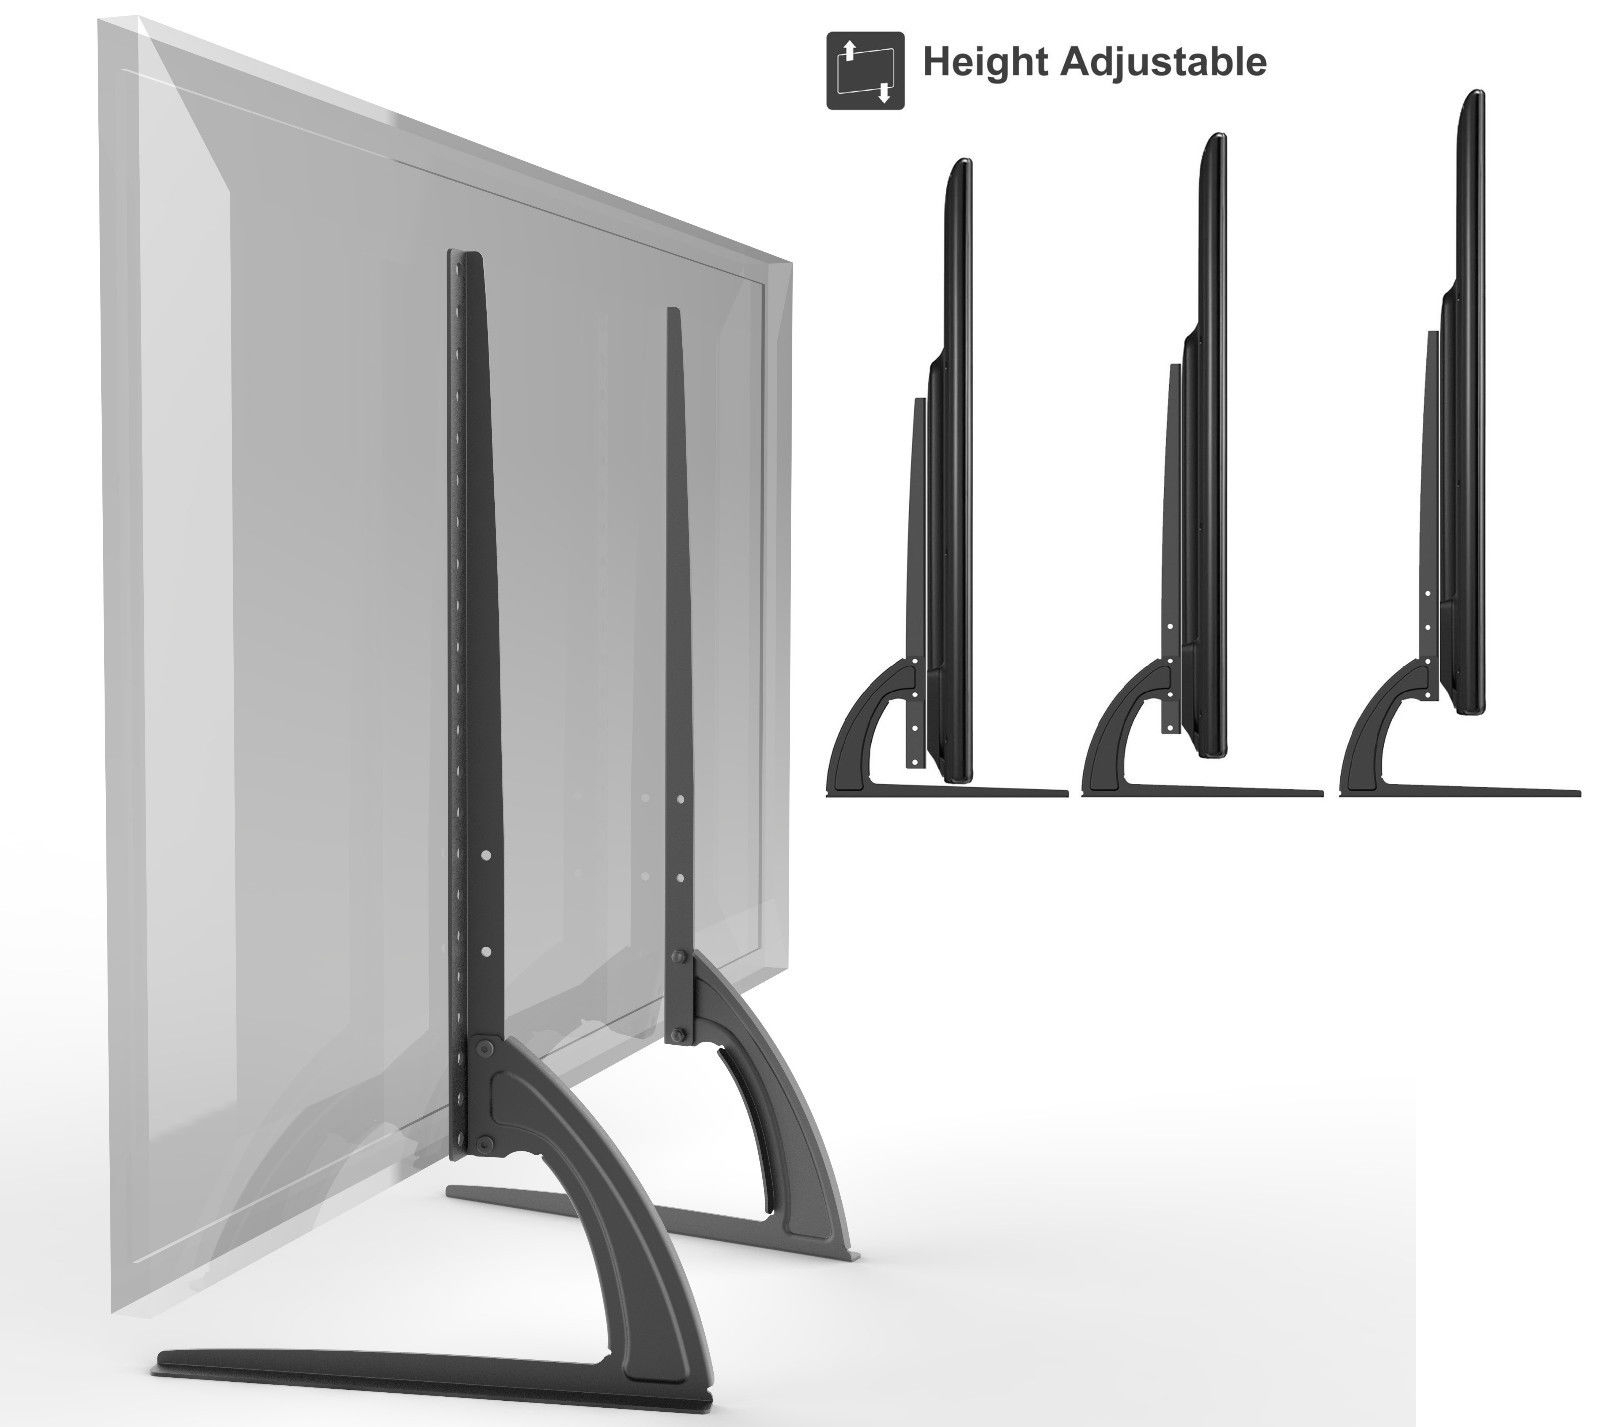 Universal Table Top Tv Stand Legs For Lg 49lf6300 Height Adjustable With Regard To Forma 65 Inch Tv Stands (View 5 of 30)